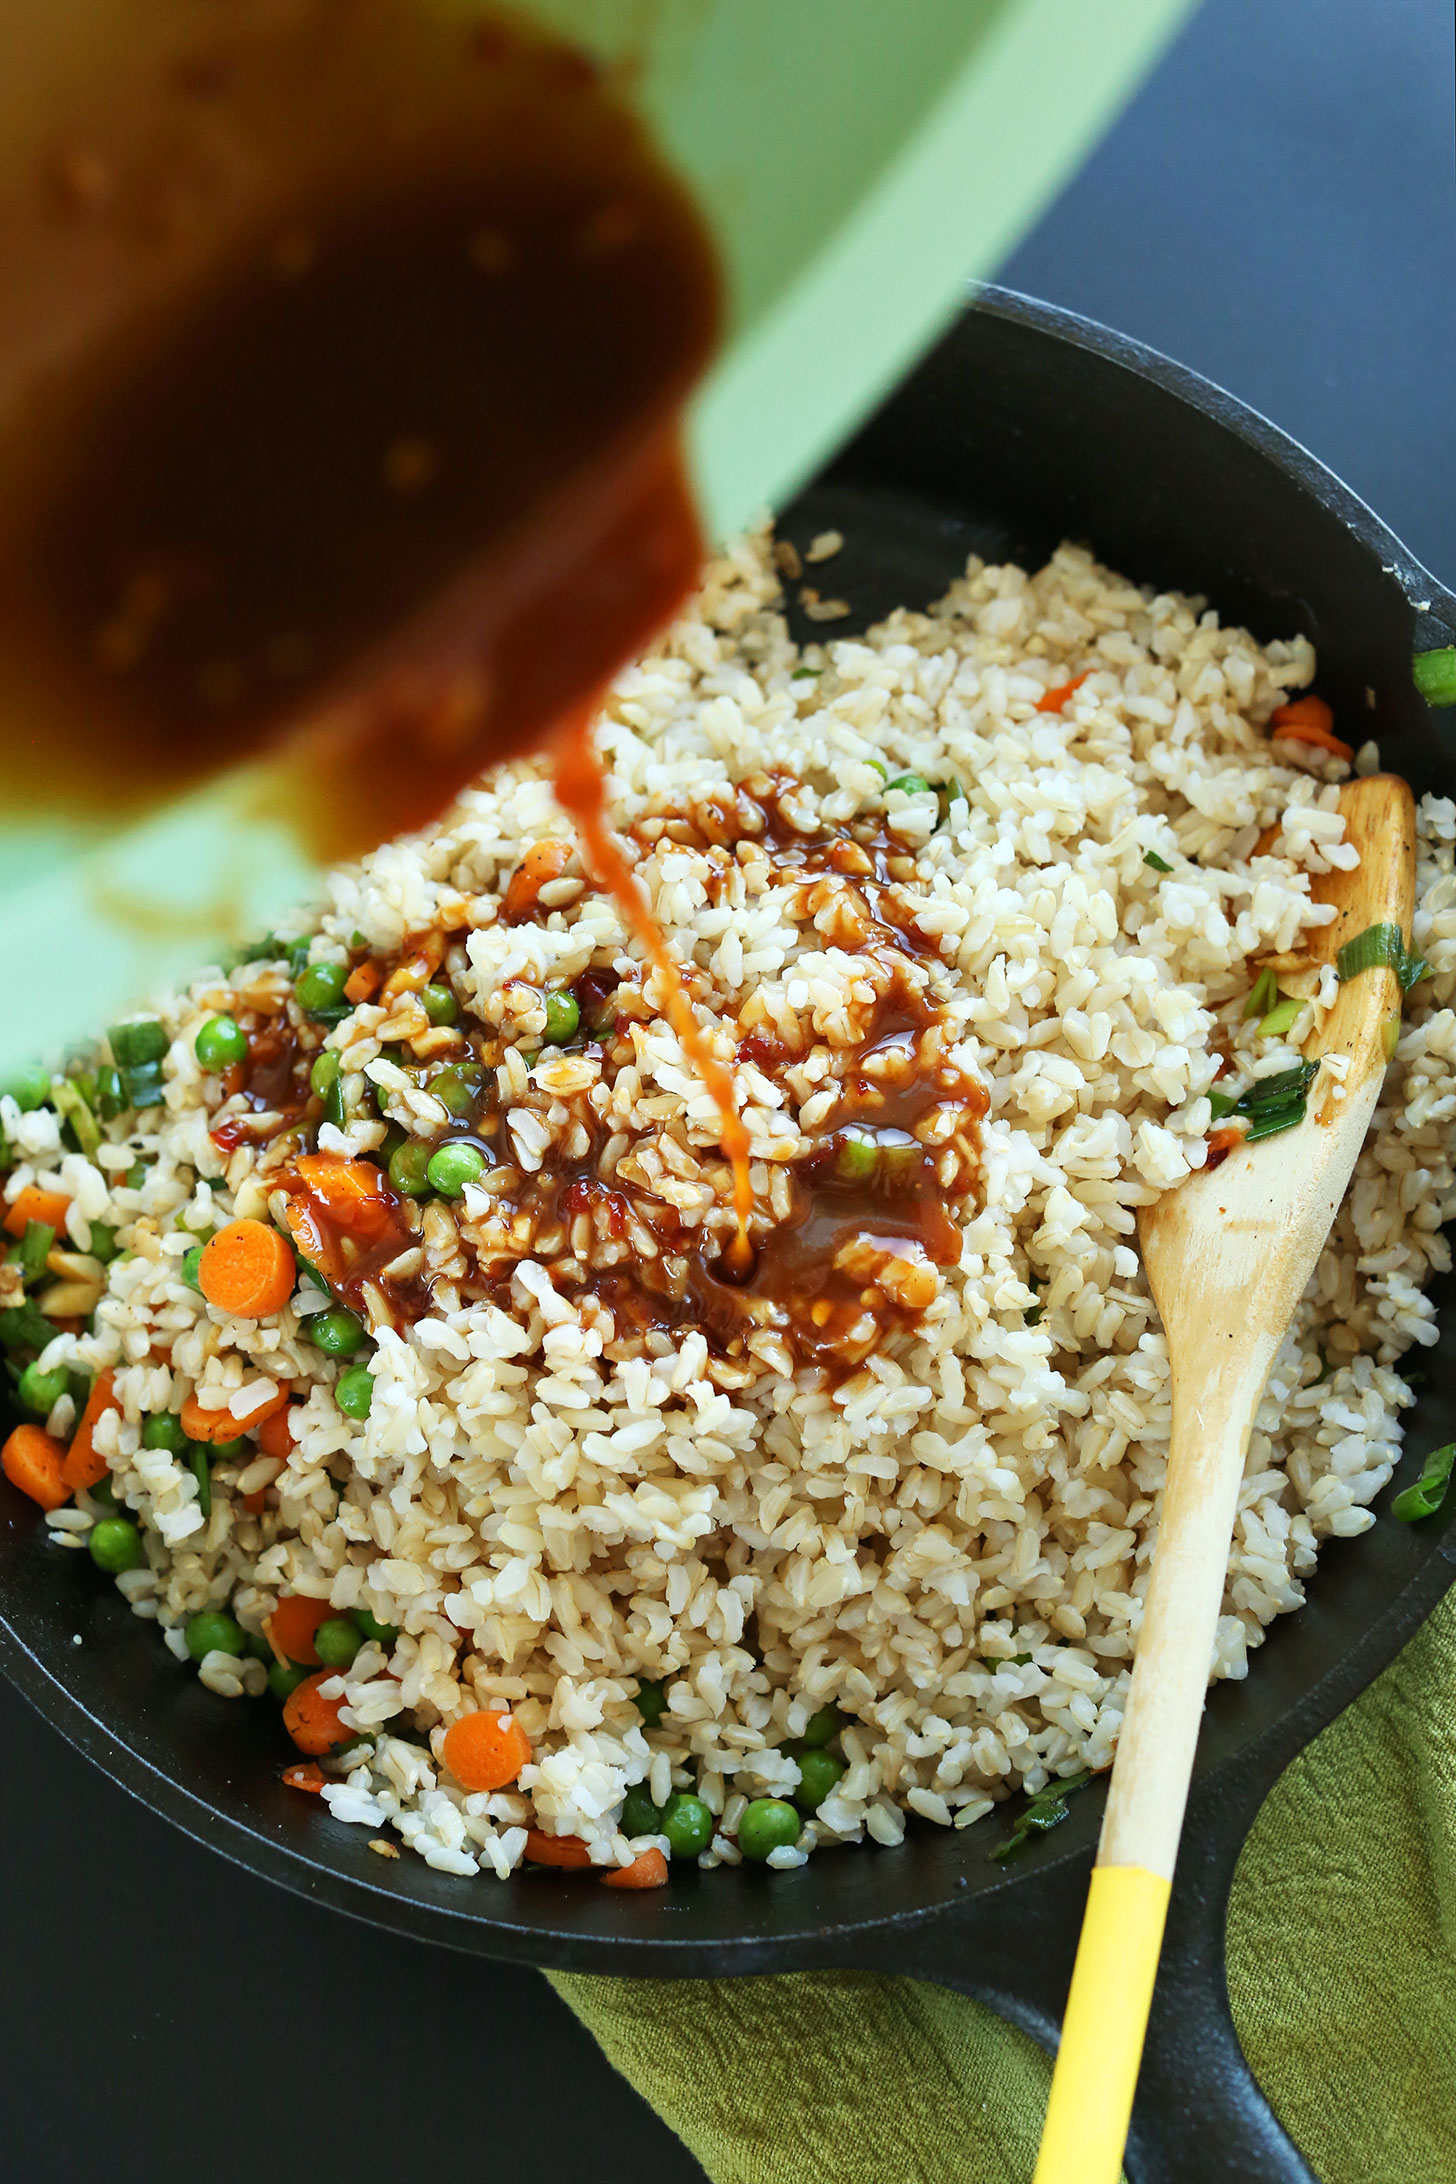 Pouring sauce into a skillet of Vegan Fried Rice with Crispy Tofu